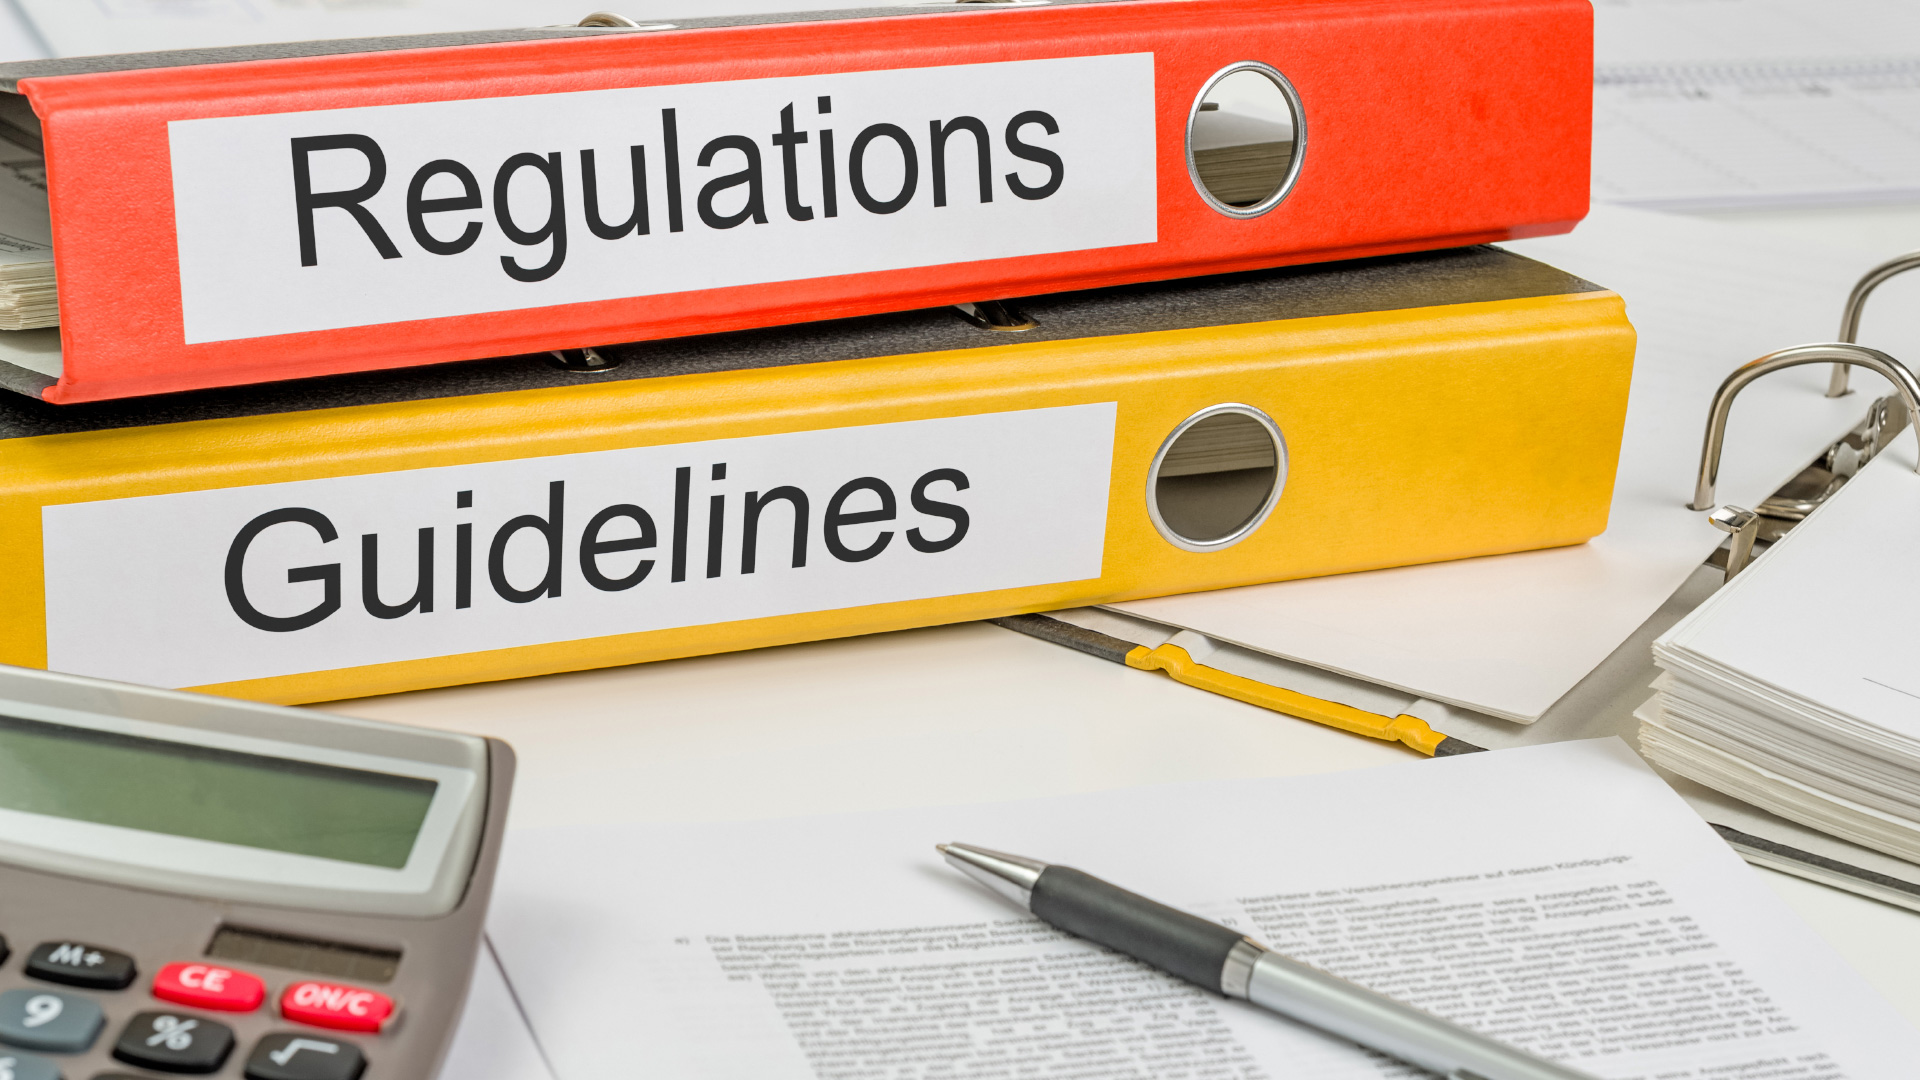 Should Indian securities law shift focus from promoters to persons in control? More on SEBI's regulatory reforms